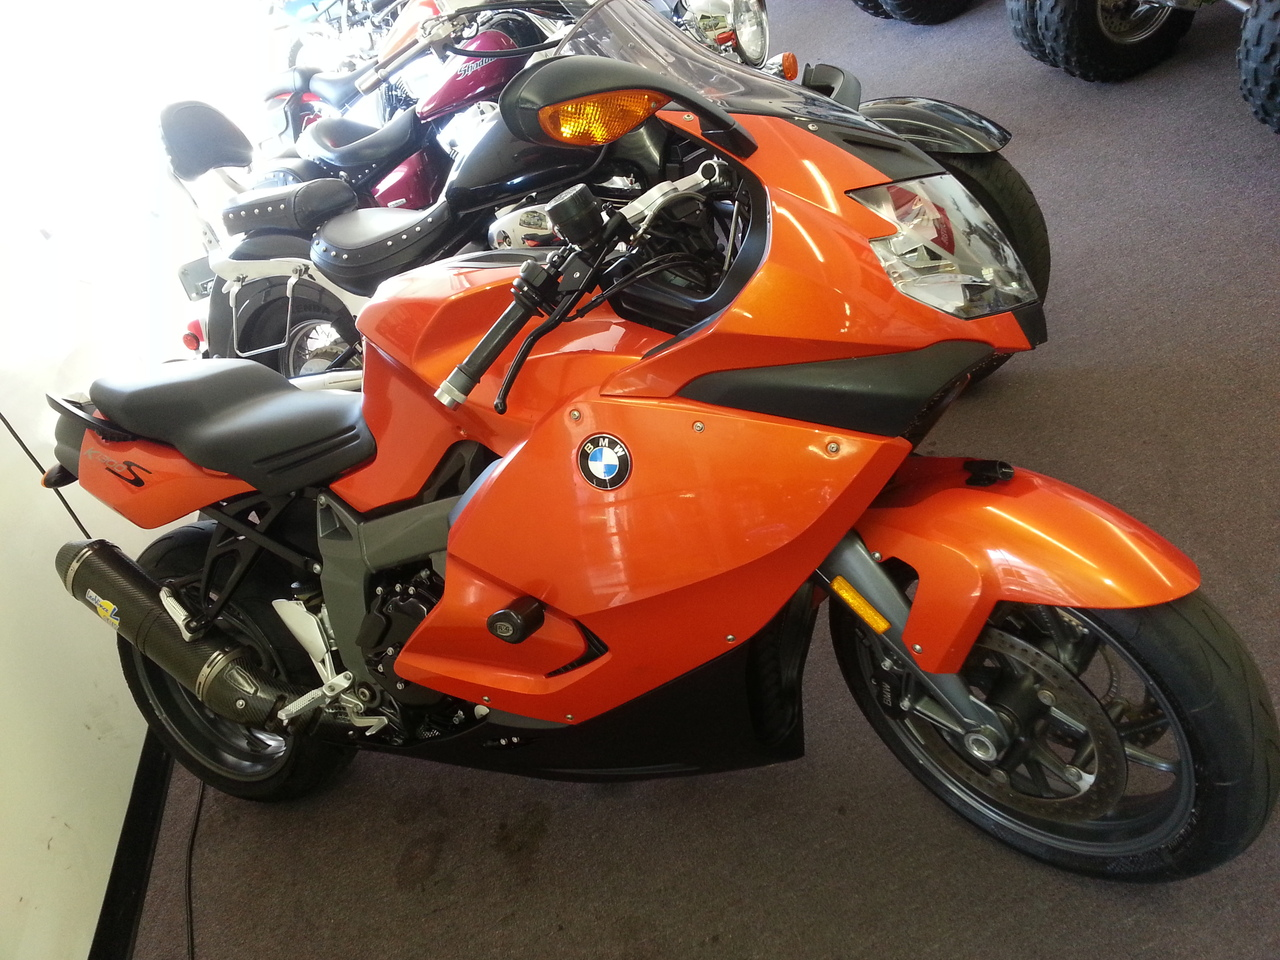 2008 BMW K 1300 S, motorcycle listing